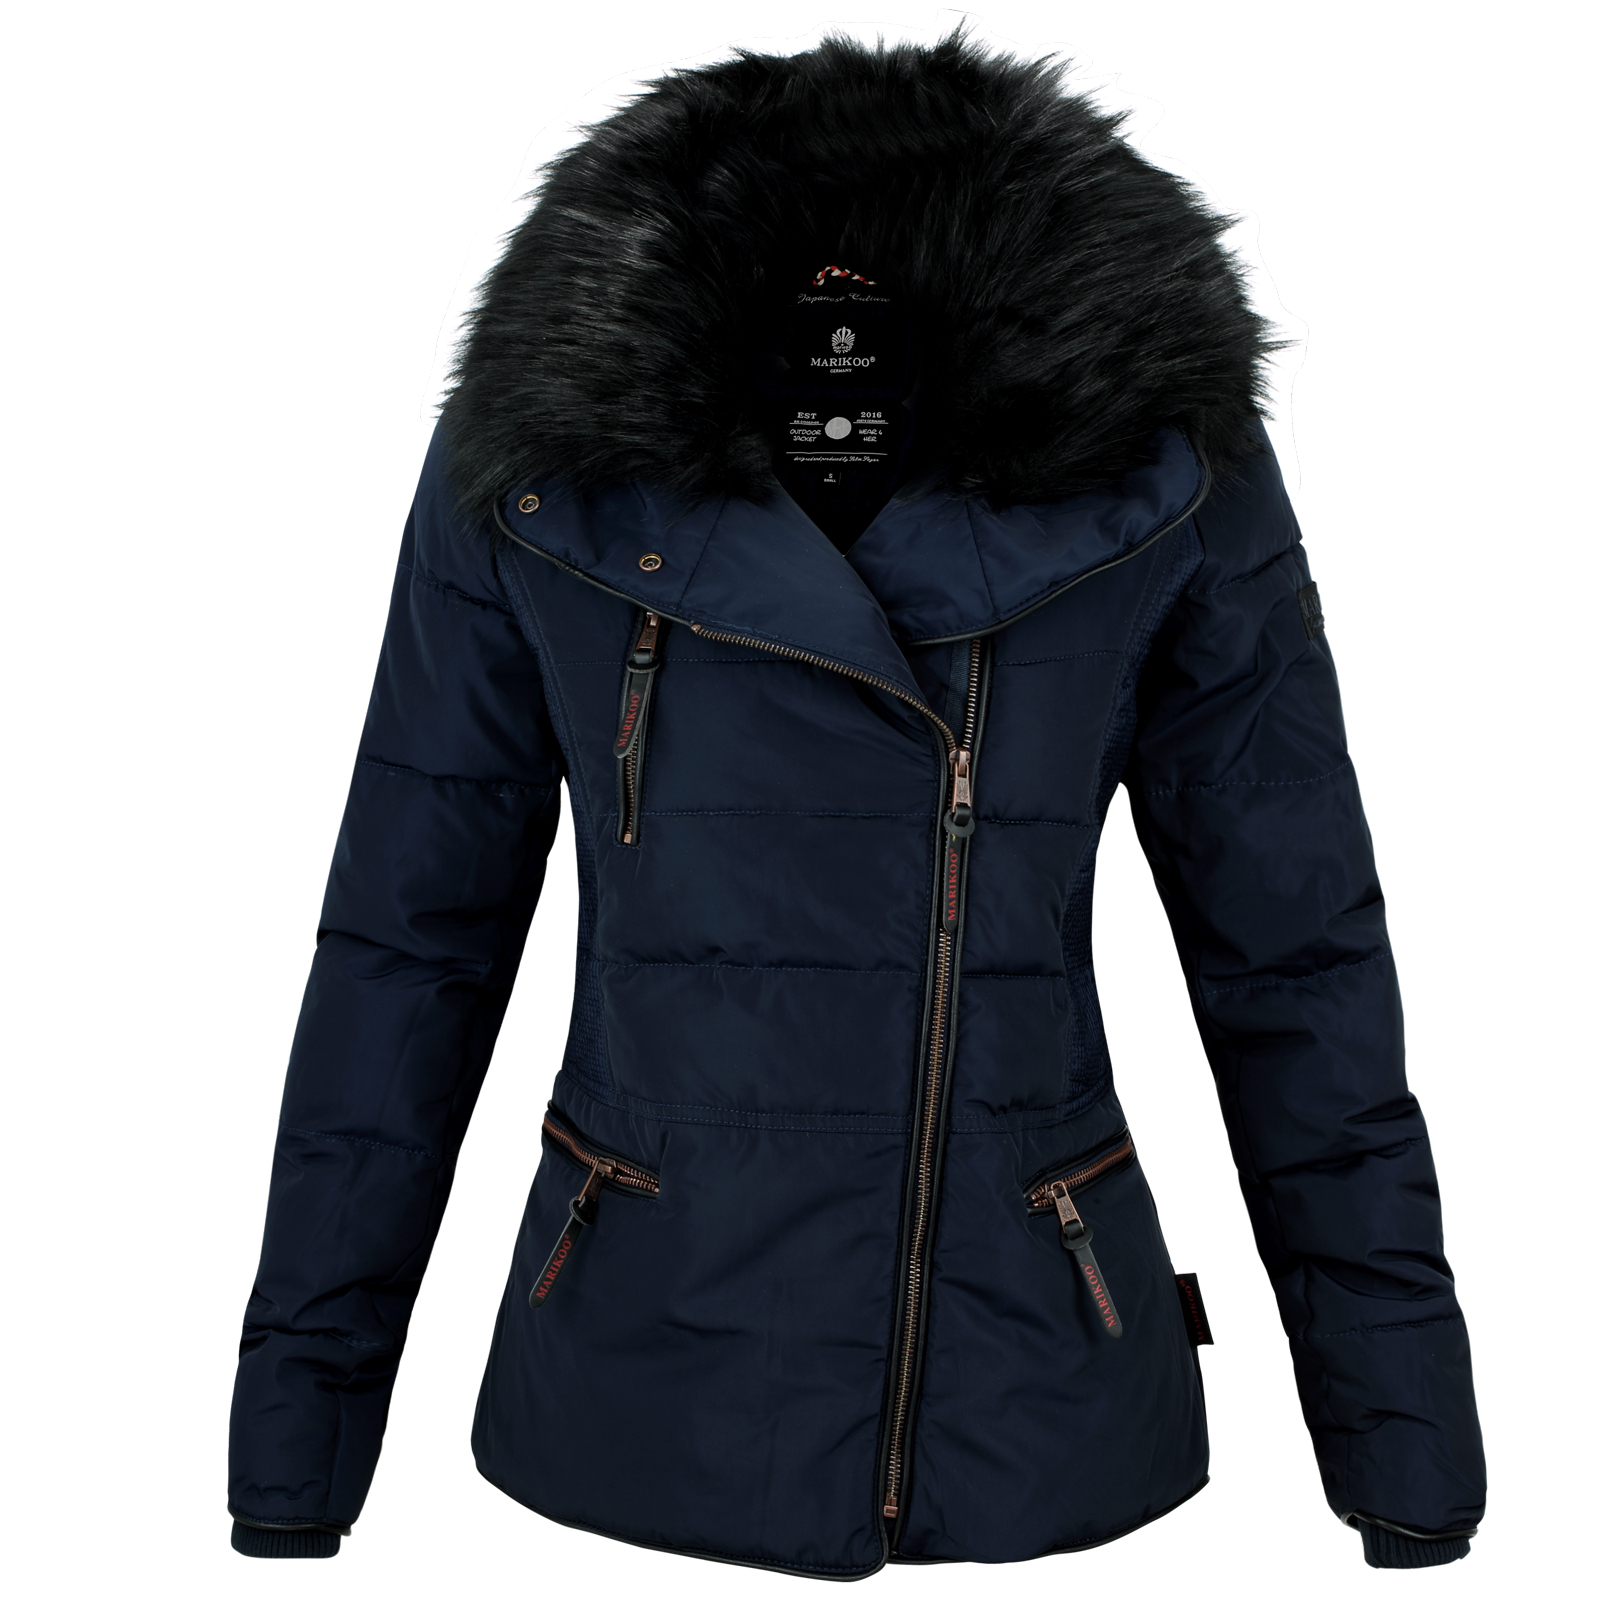 marikoo marta damen herbst winter kurz stepp jacke parka mantel warm gef ttert ebay. Black Bedroom Furniture Sets. Home Design Ideas